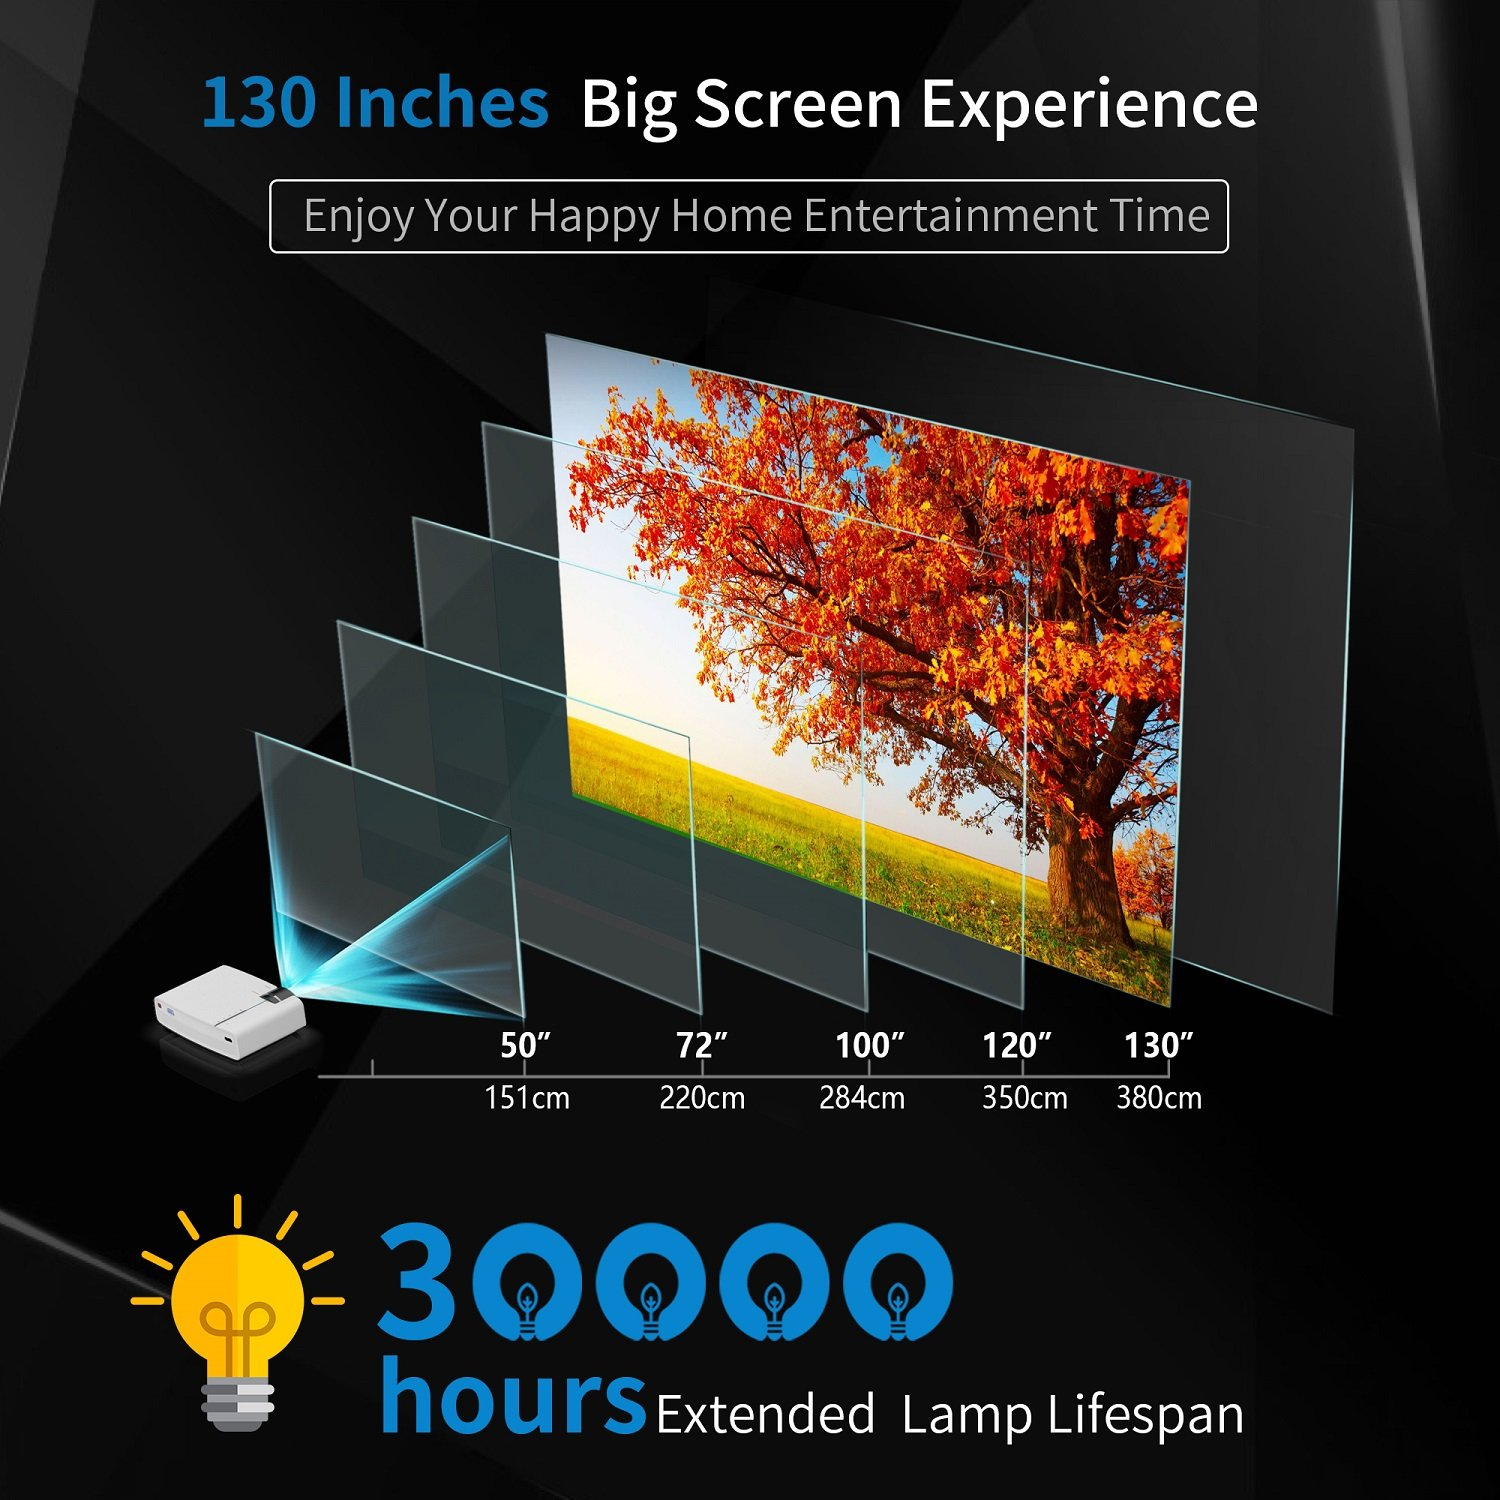 XPISMII D60 LED Mini Projector, Portable Multimedia Home Theater HD LCD Movie Video Projector Support 1080P HDMI USB VGA AV Home Cinema TV Game Computer iPhone/Ipad Android Smartphone with HDMI Cable by XPISMII (Image #3)